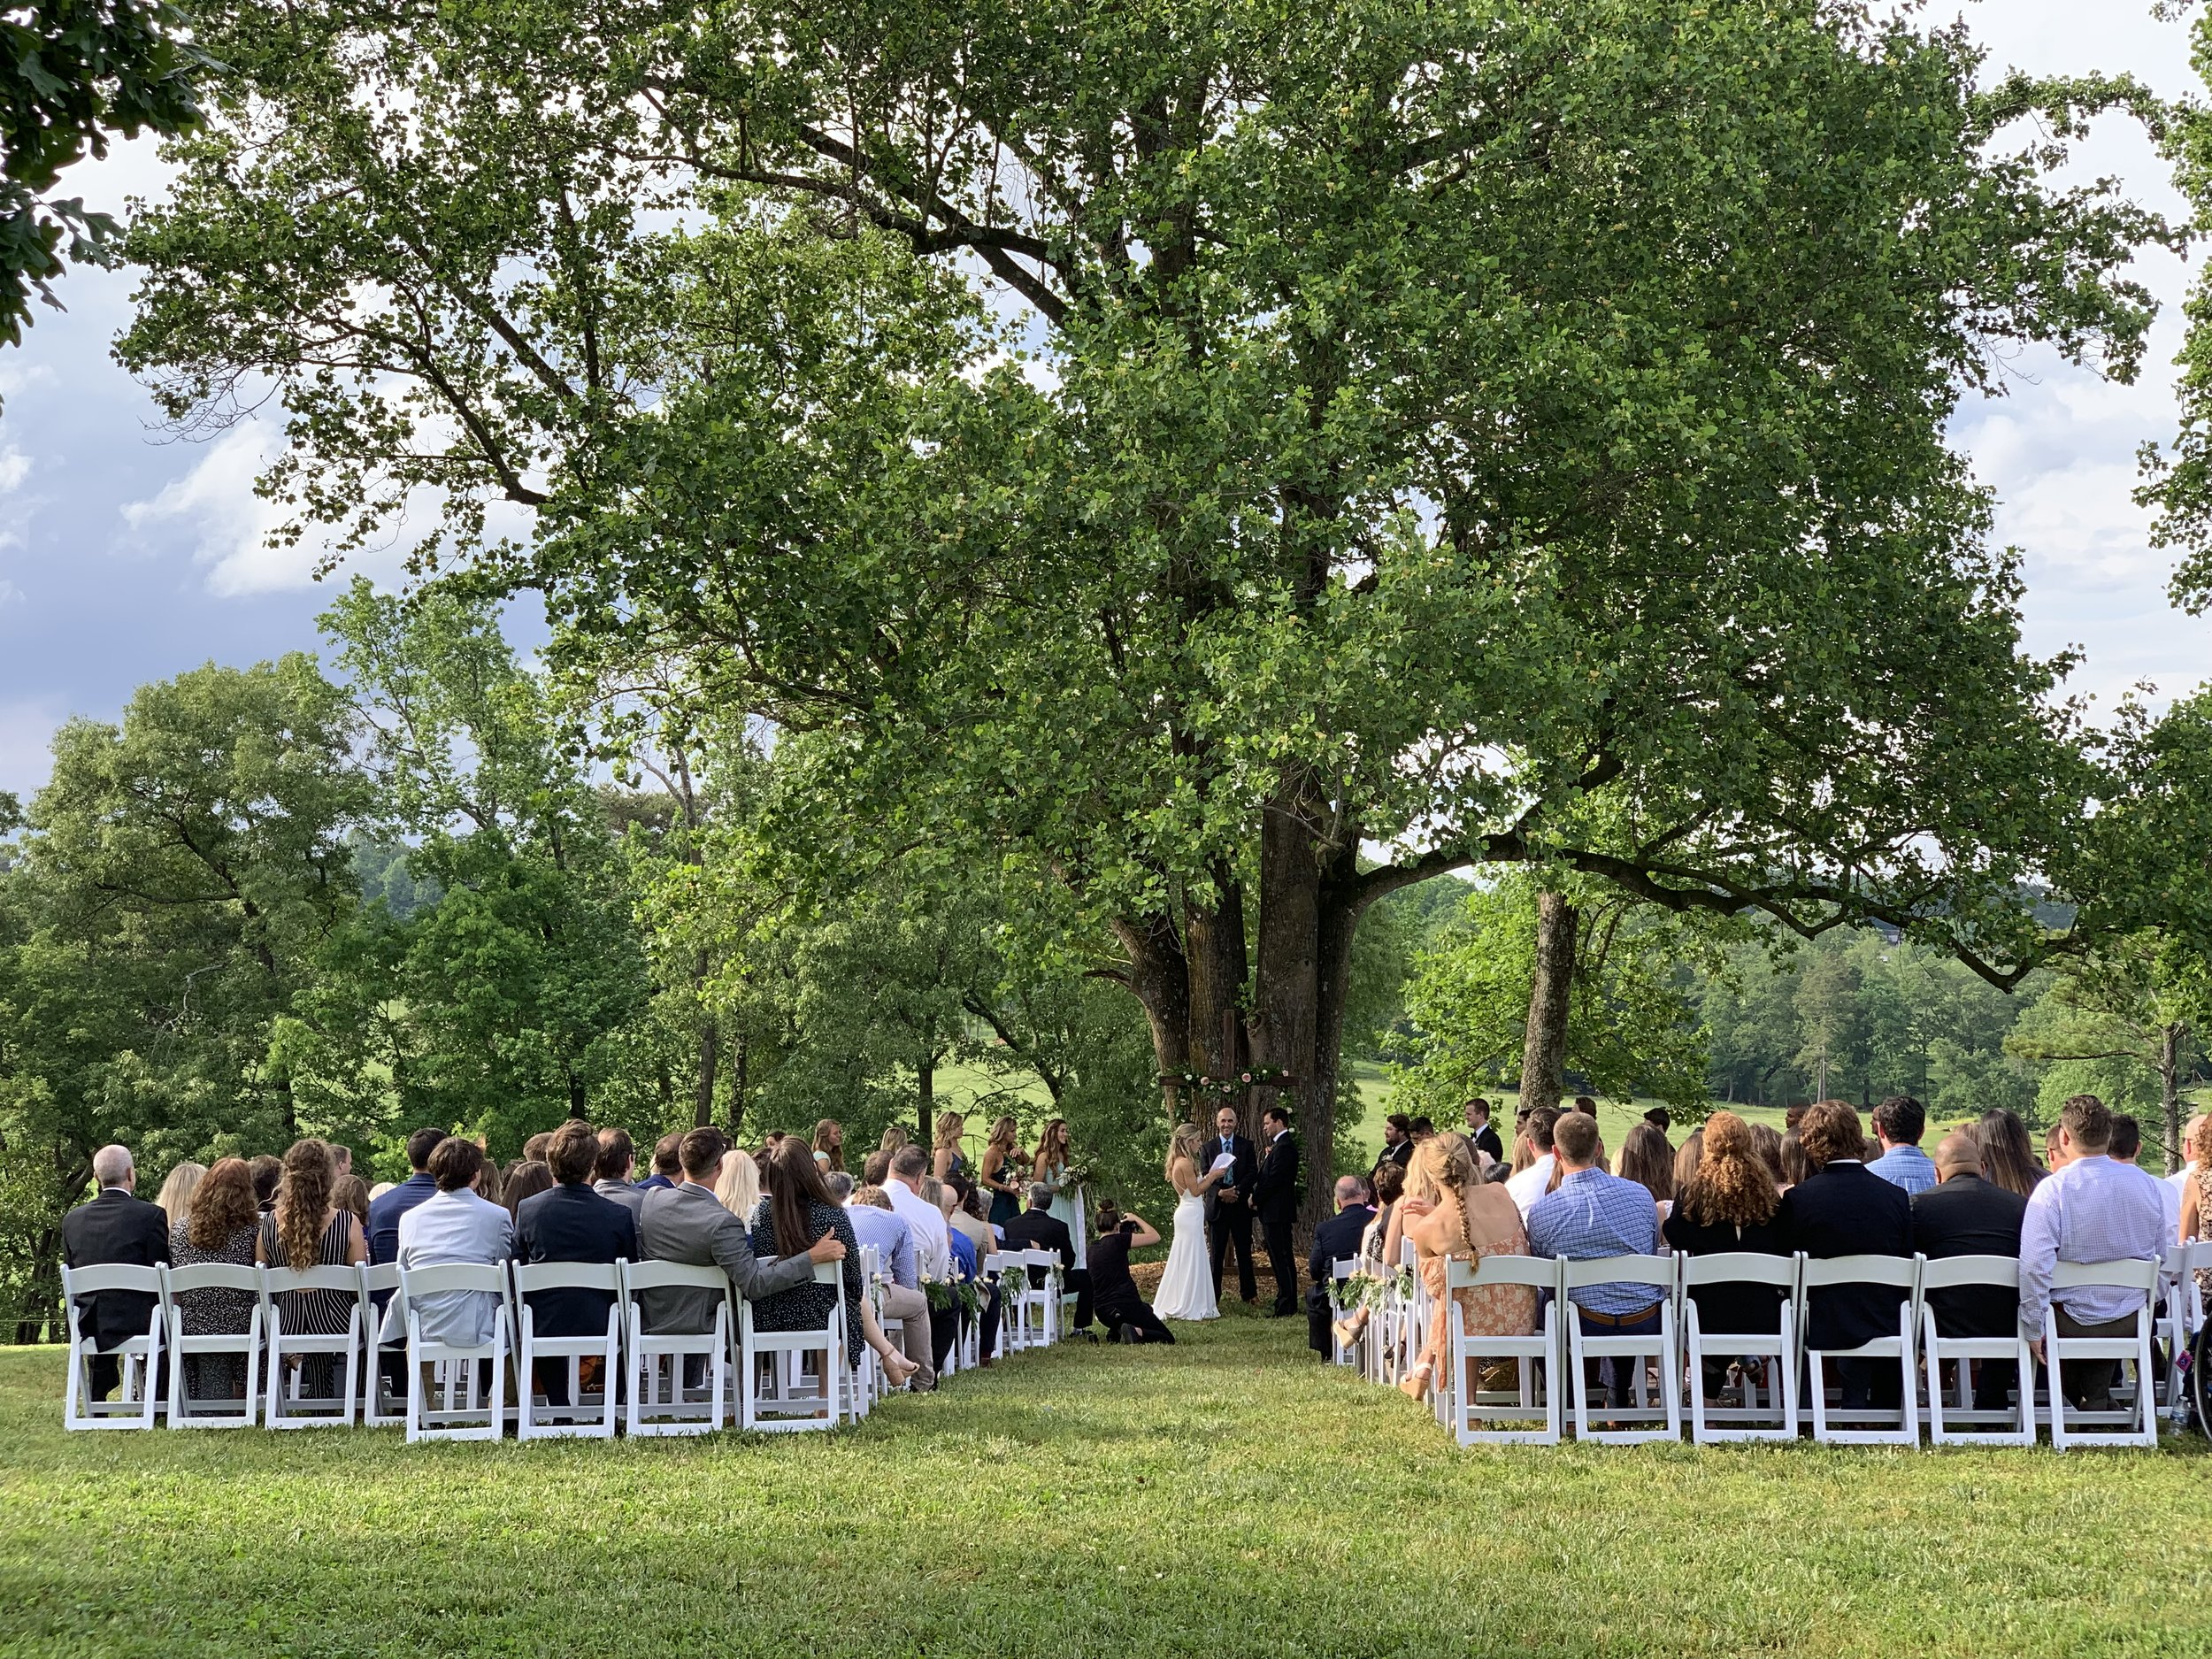 It was a stormy day but the sky cleared up just in time for our outdoor ceremony